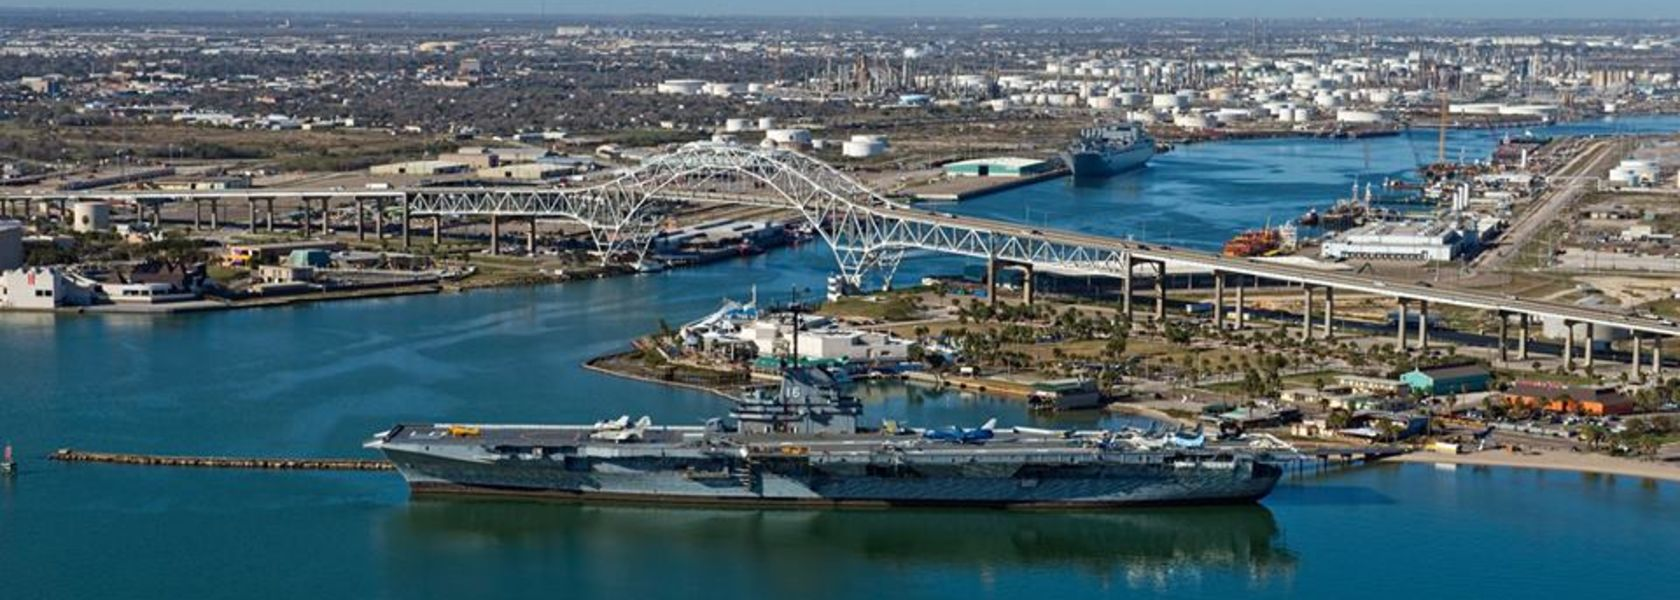 Port of Corpus Christi signs final lease agreement